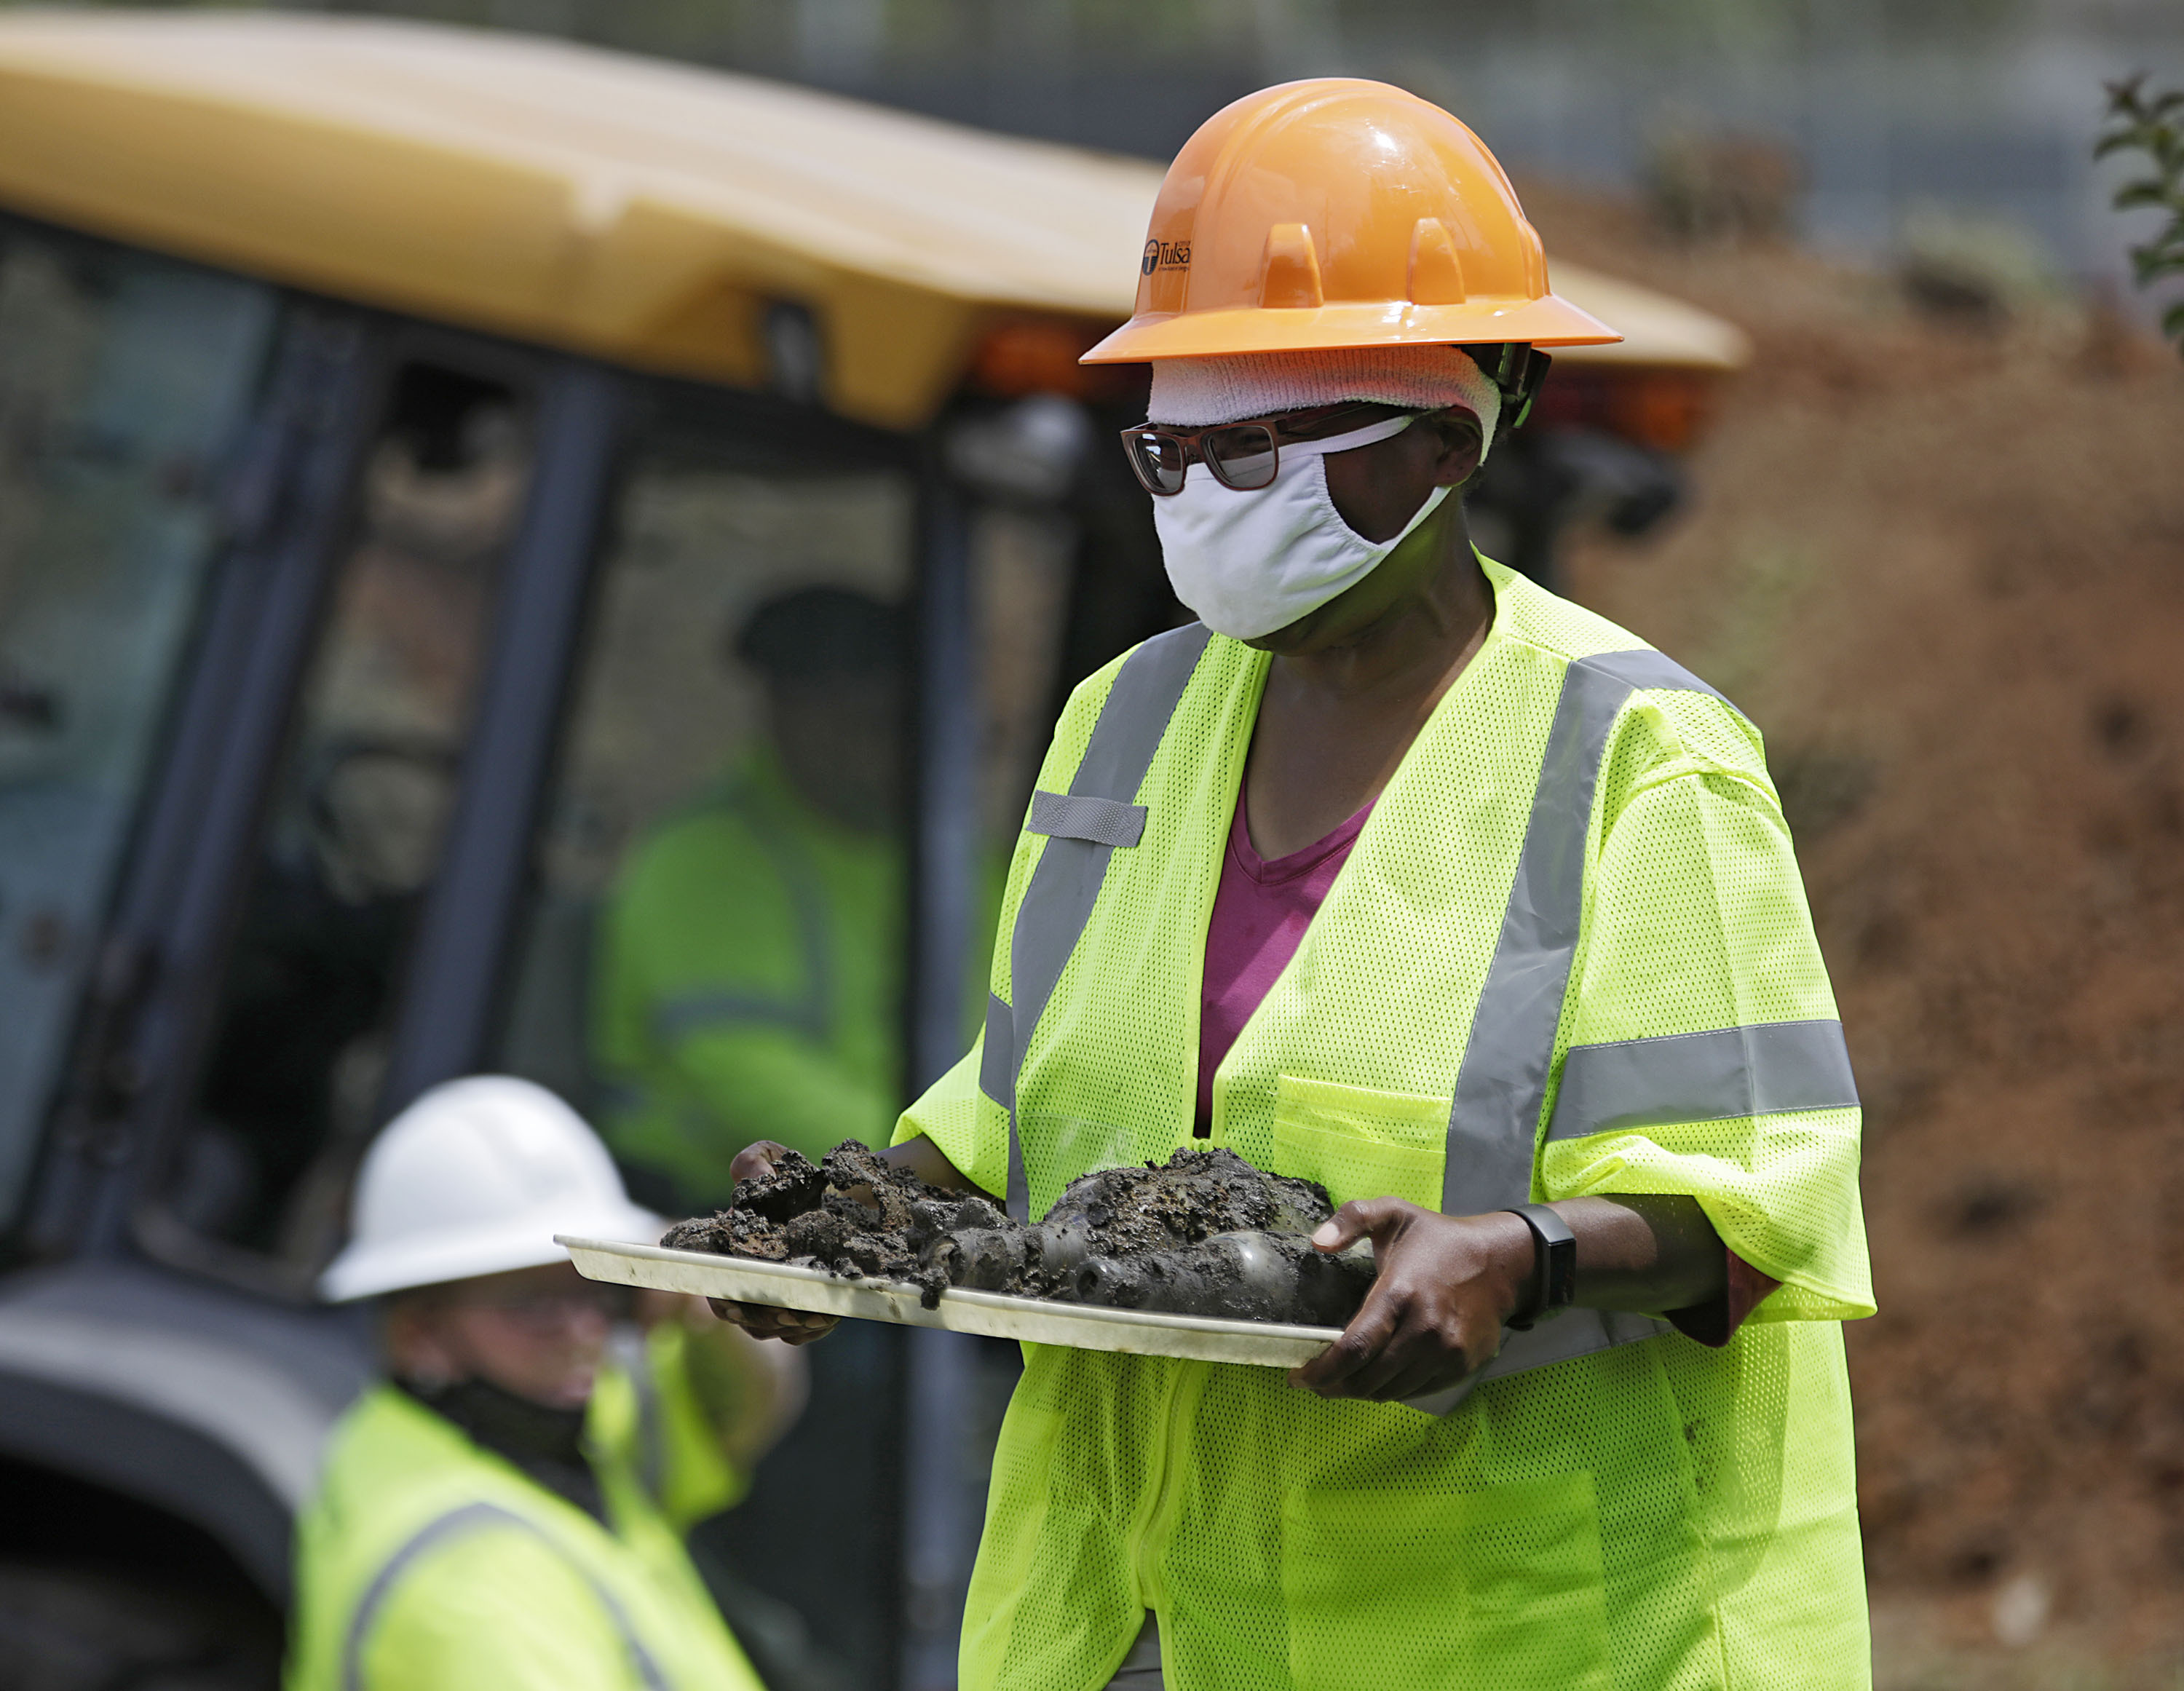 In this July 21, 2020, file photo, forensic anthropologist Phoebe Stubblefield carries a tray of items found at Oaklawn Cemetery during a test excavation in the search for possible mass graves from the 1921 Tulsa Race Massacre in Tulsa, Okla.